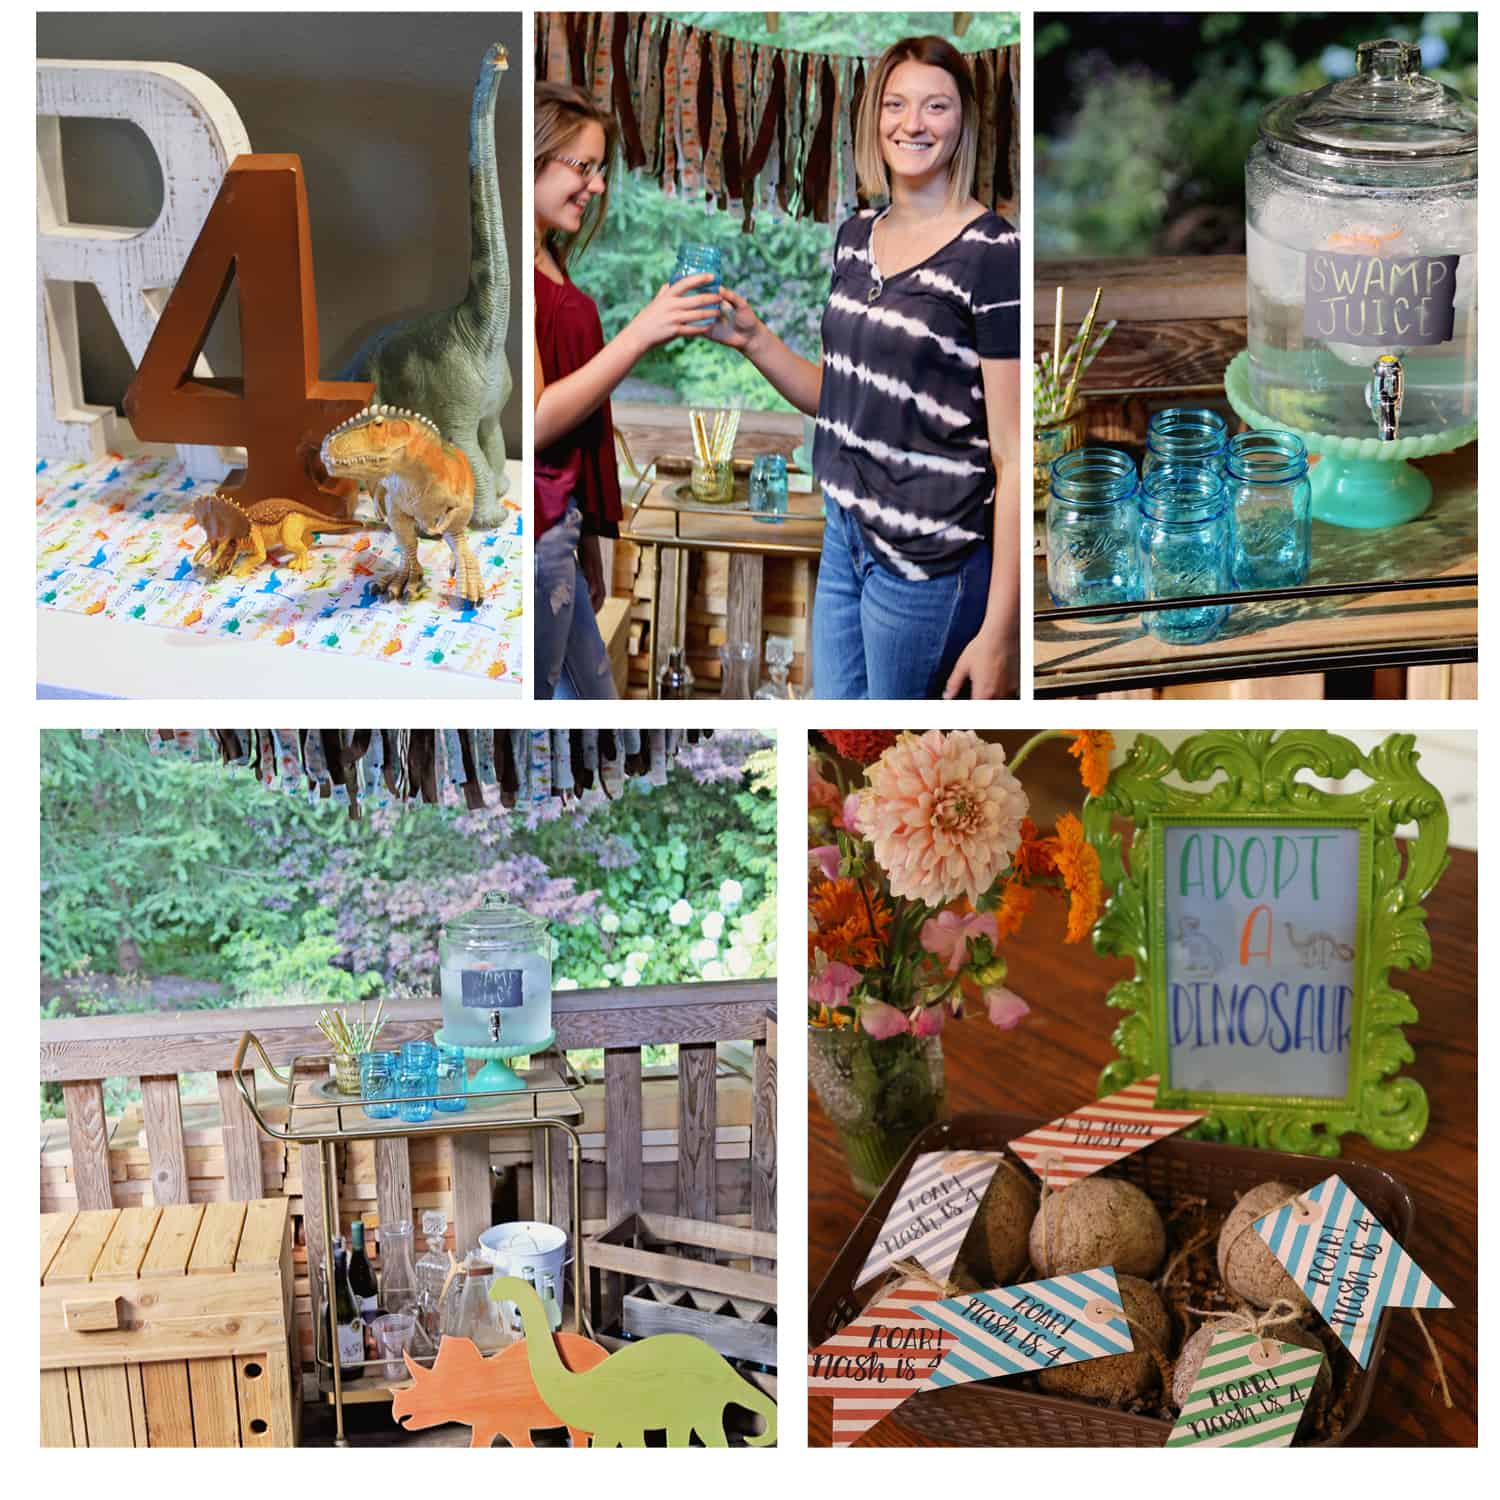 Montage of Dinosaur Birthday Party ideas decoartino, gifts, games, drinks and bar cart